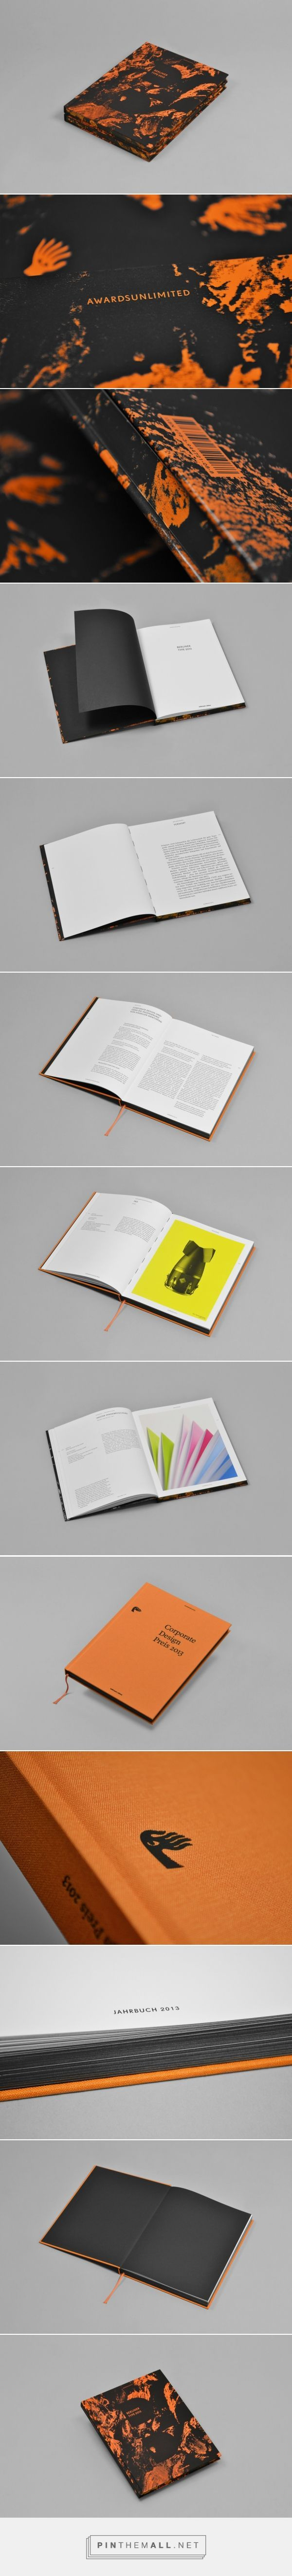 34 best Yearbook Covers - Yearbook Spreads images on Pinterest ...